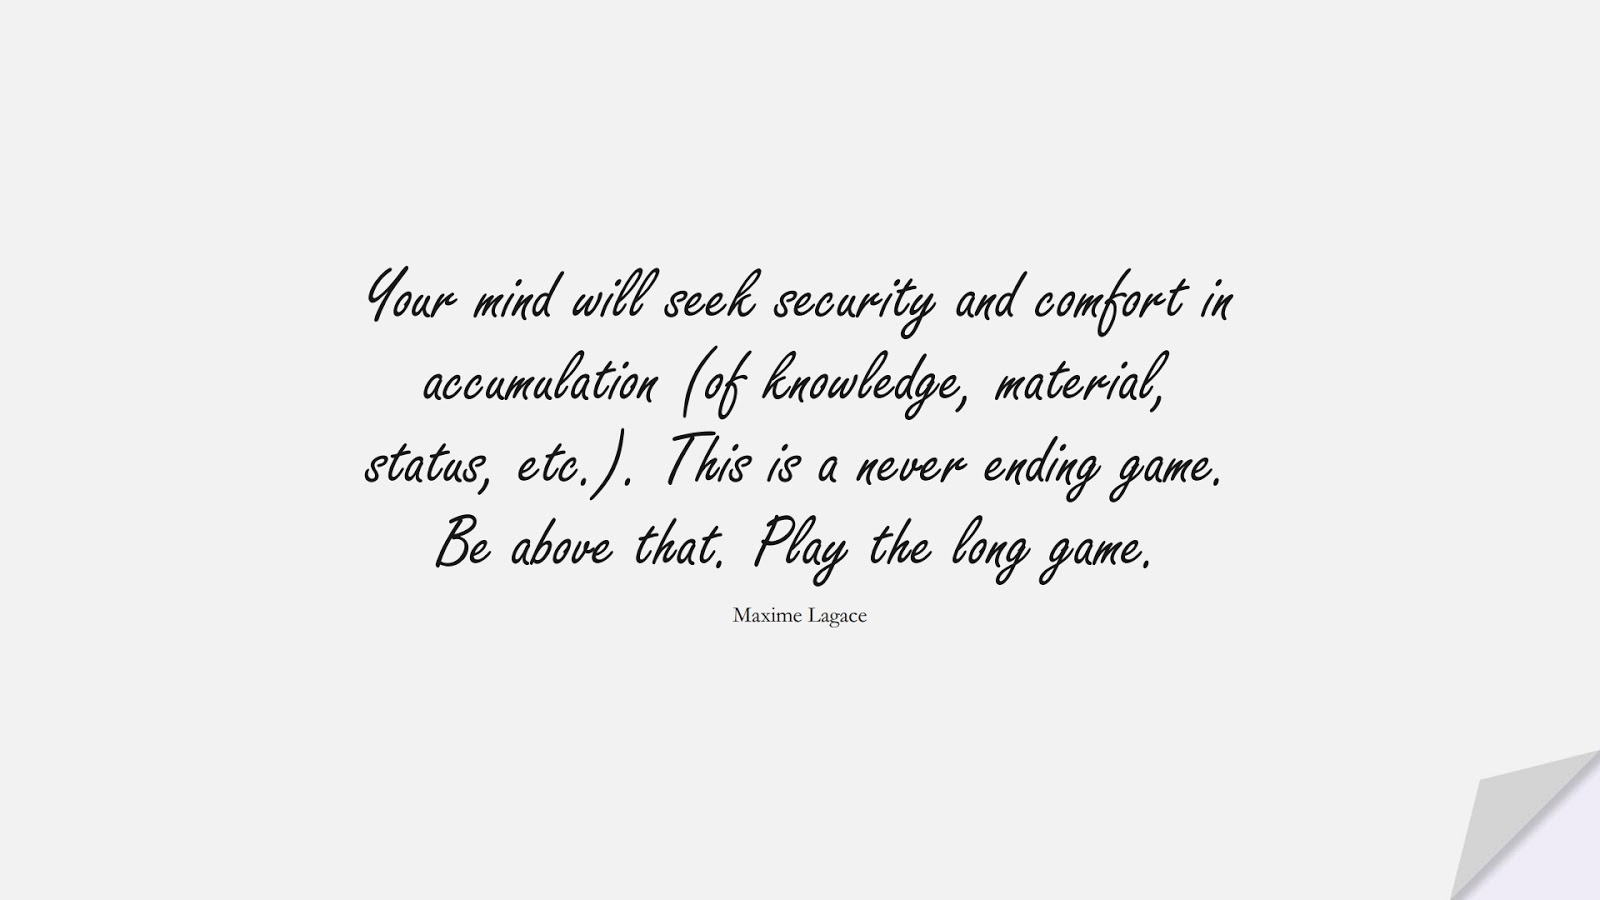 Your mind will seek security and comfort in accumulation (of knowledge, material, status, etc.). This is a never ending game. Be above that. Play the long game. (Maxime Lagace);  #HappinessQuotes